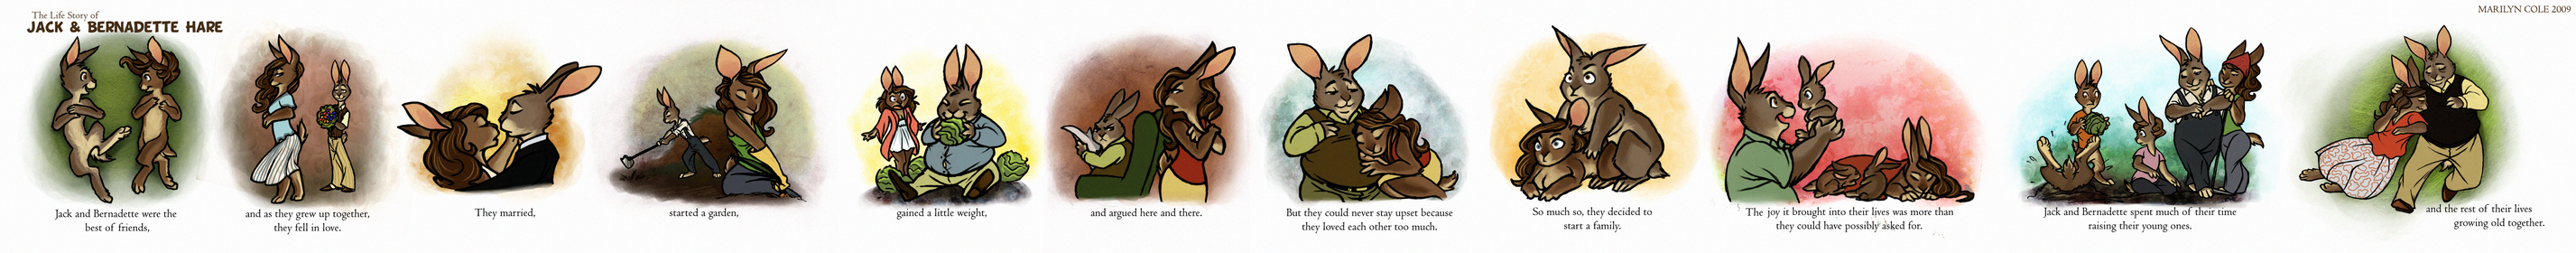 The Hare Life Story by Katmomma